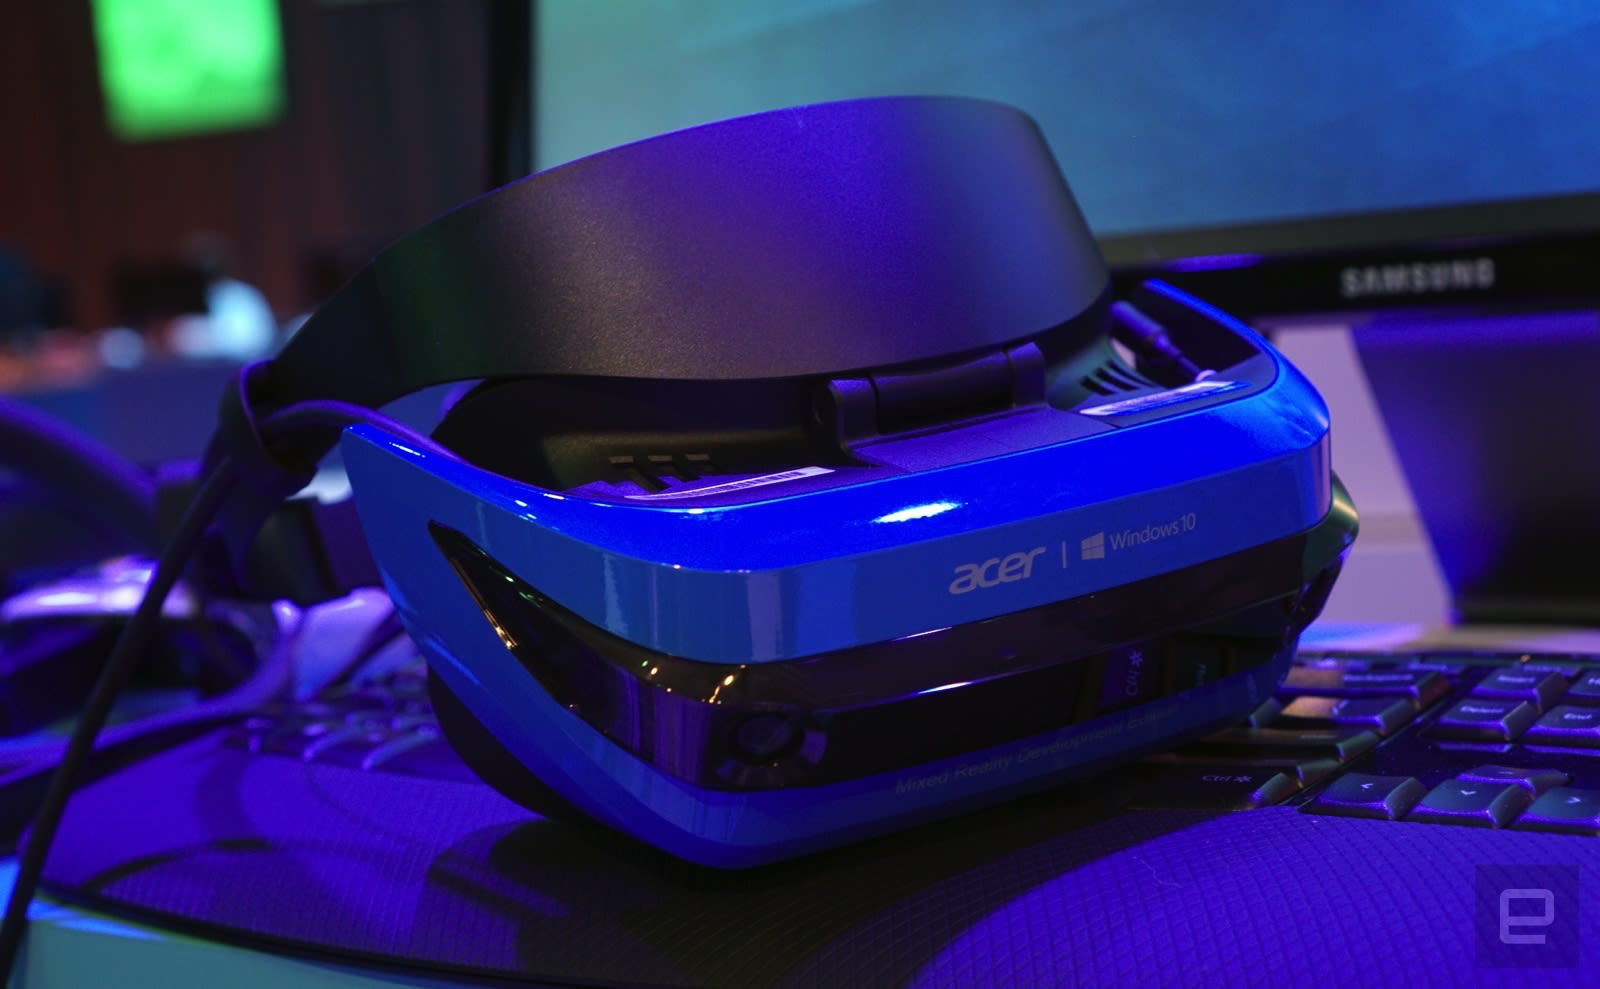 I finally believe in Microsoft's mixed reality vision